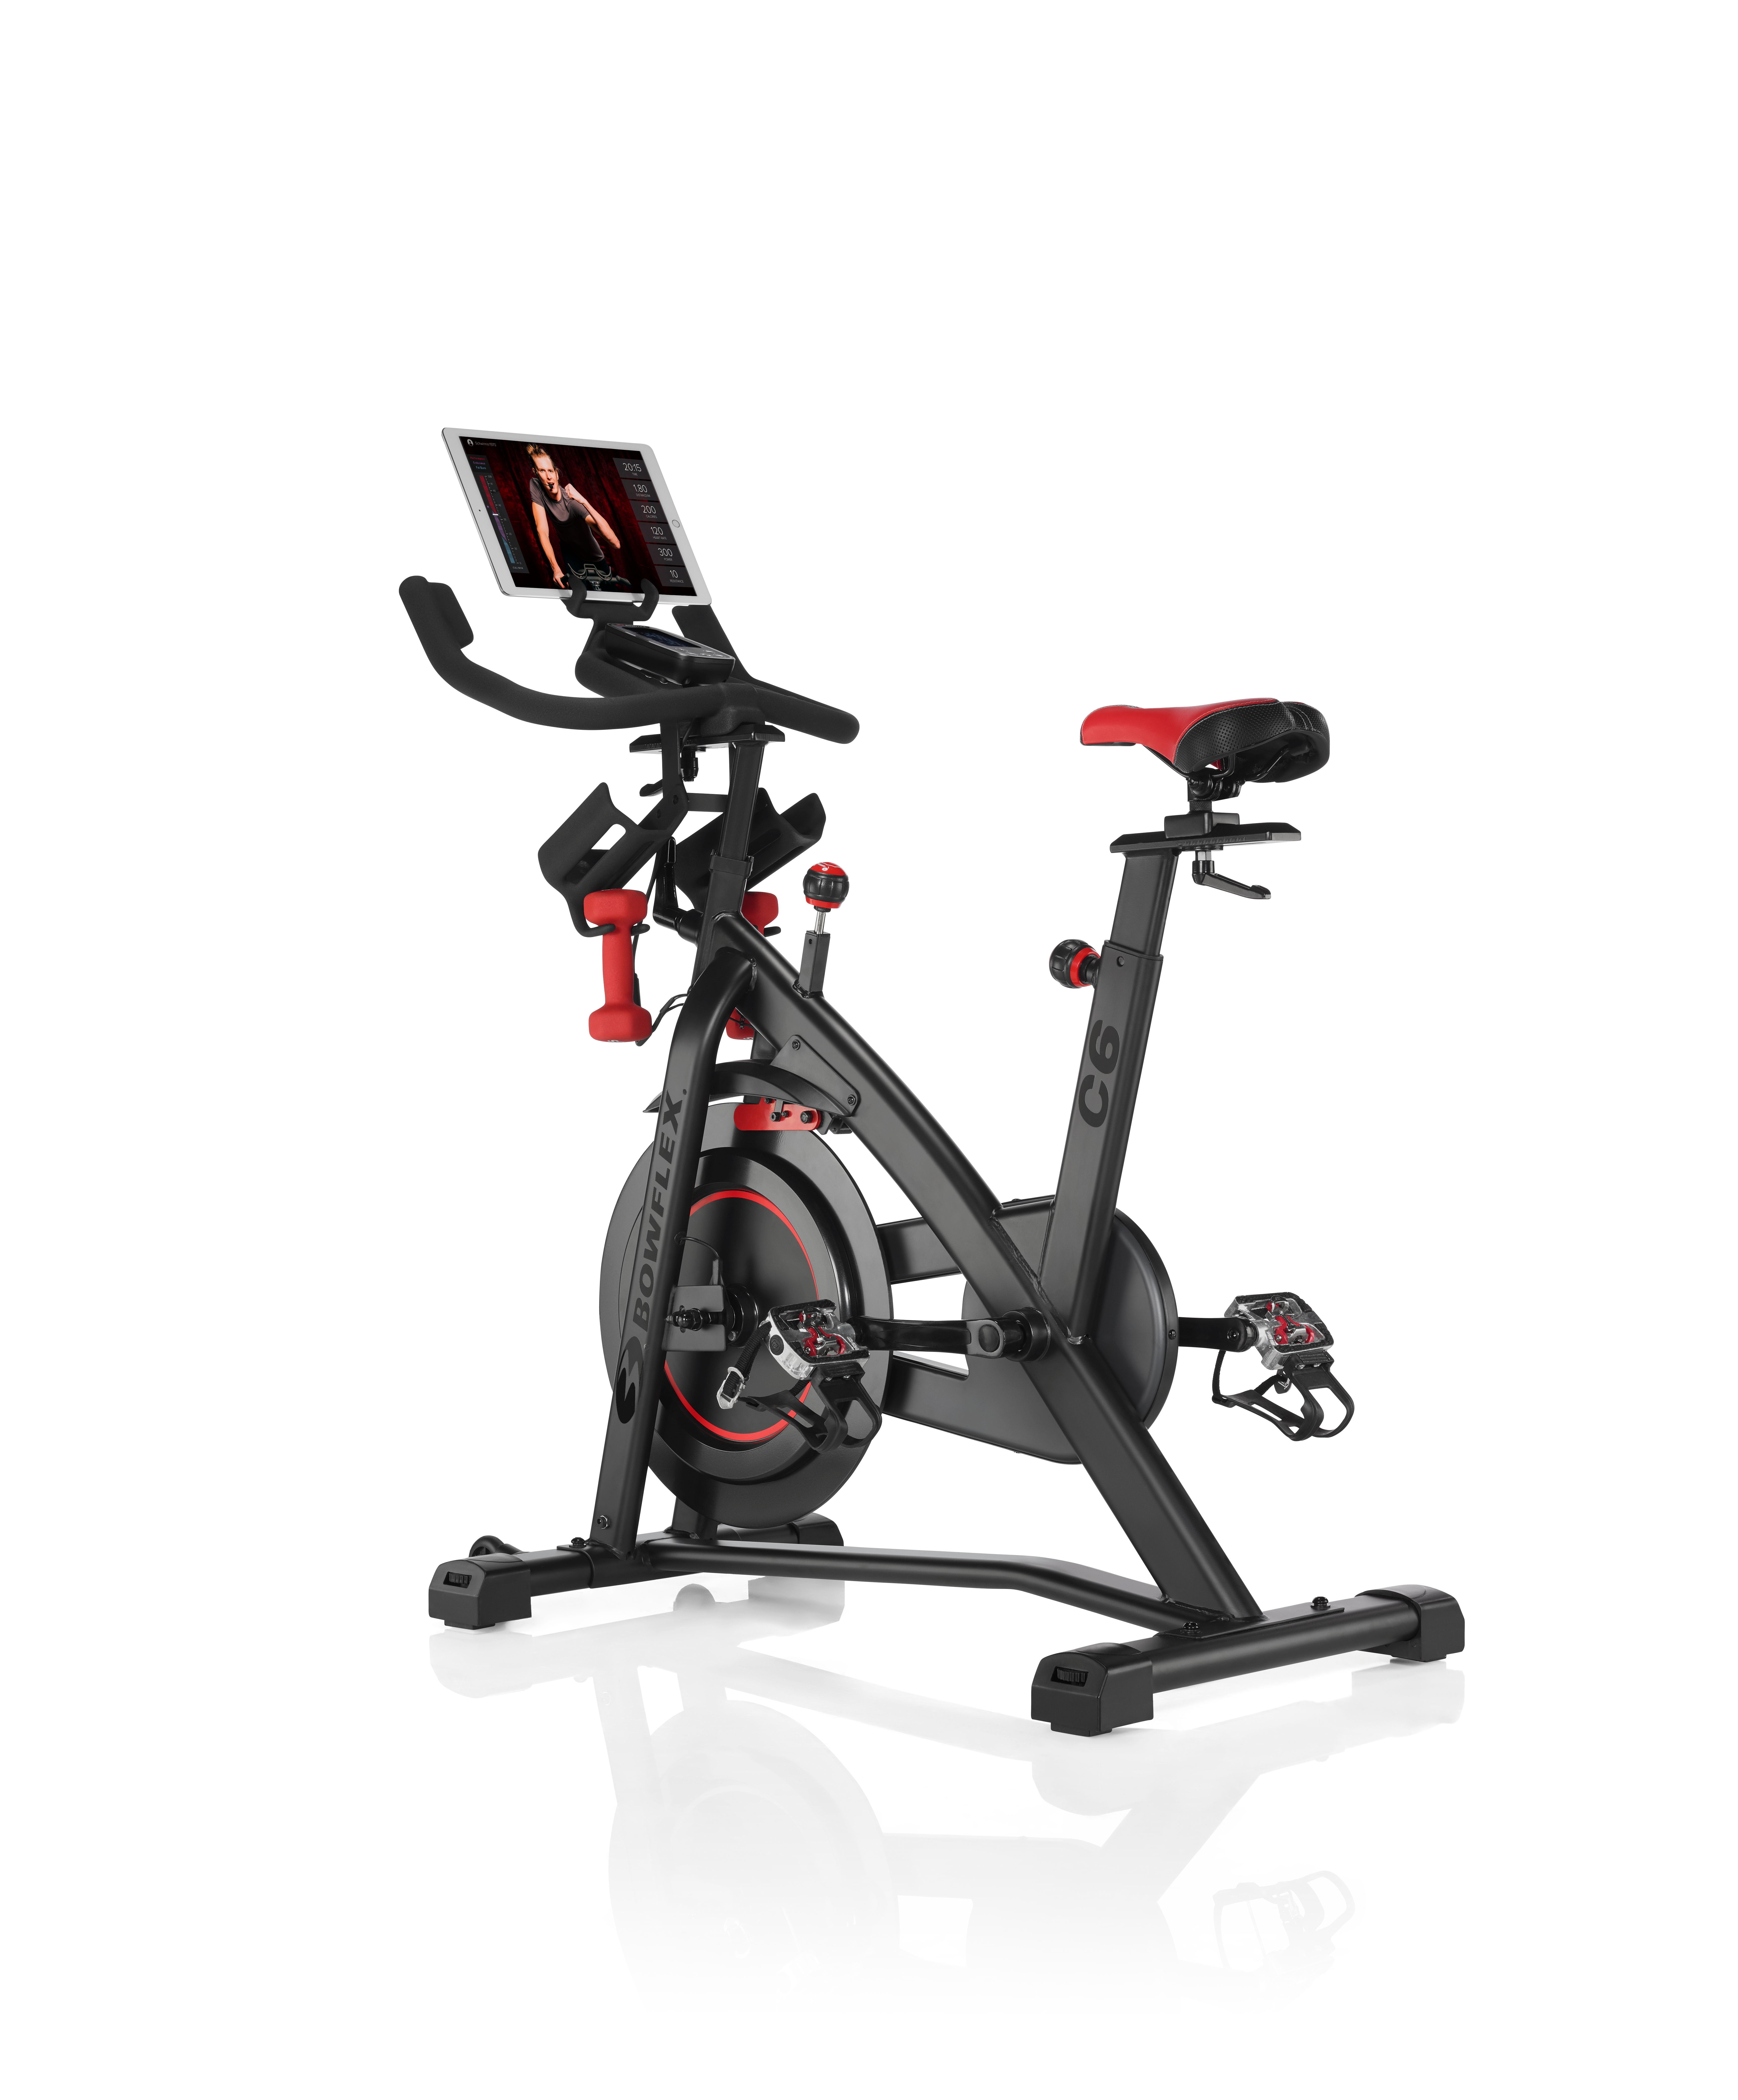 Nautilus Inc Debuts First Ever Bowflex Indoor Cycling Bike Delivering A Connected Fitness Experience At An Affordable Price Business Wire